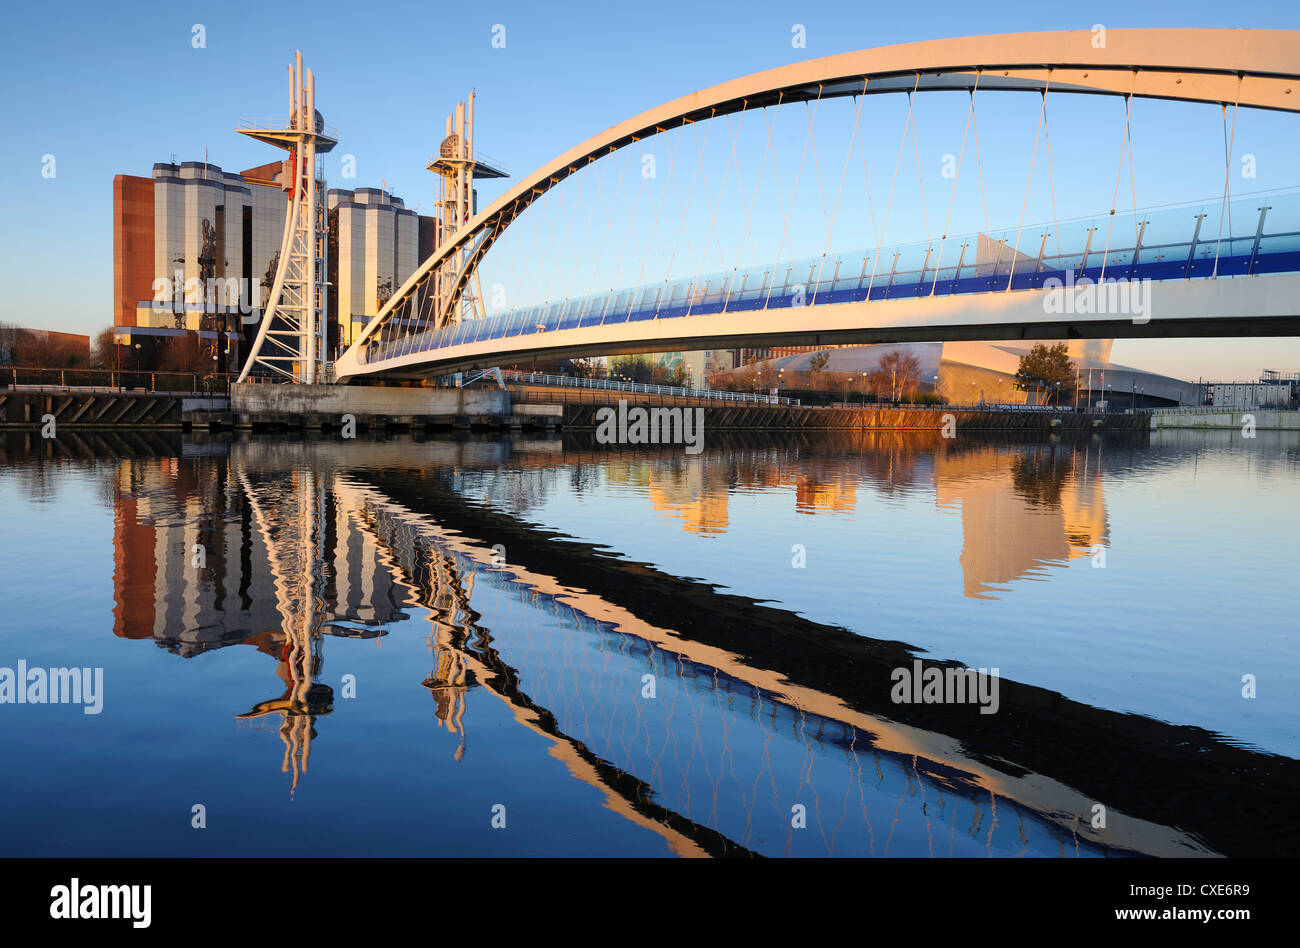 Early morning view of the Millennium Bridge, Salford Quays, Manchester, Greater Manchester, England, United Kingdom, - Stock Image